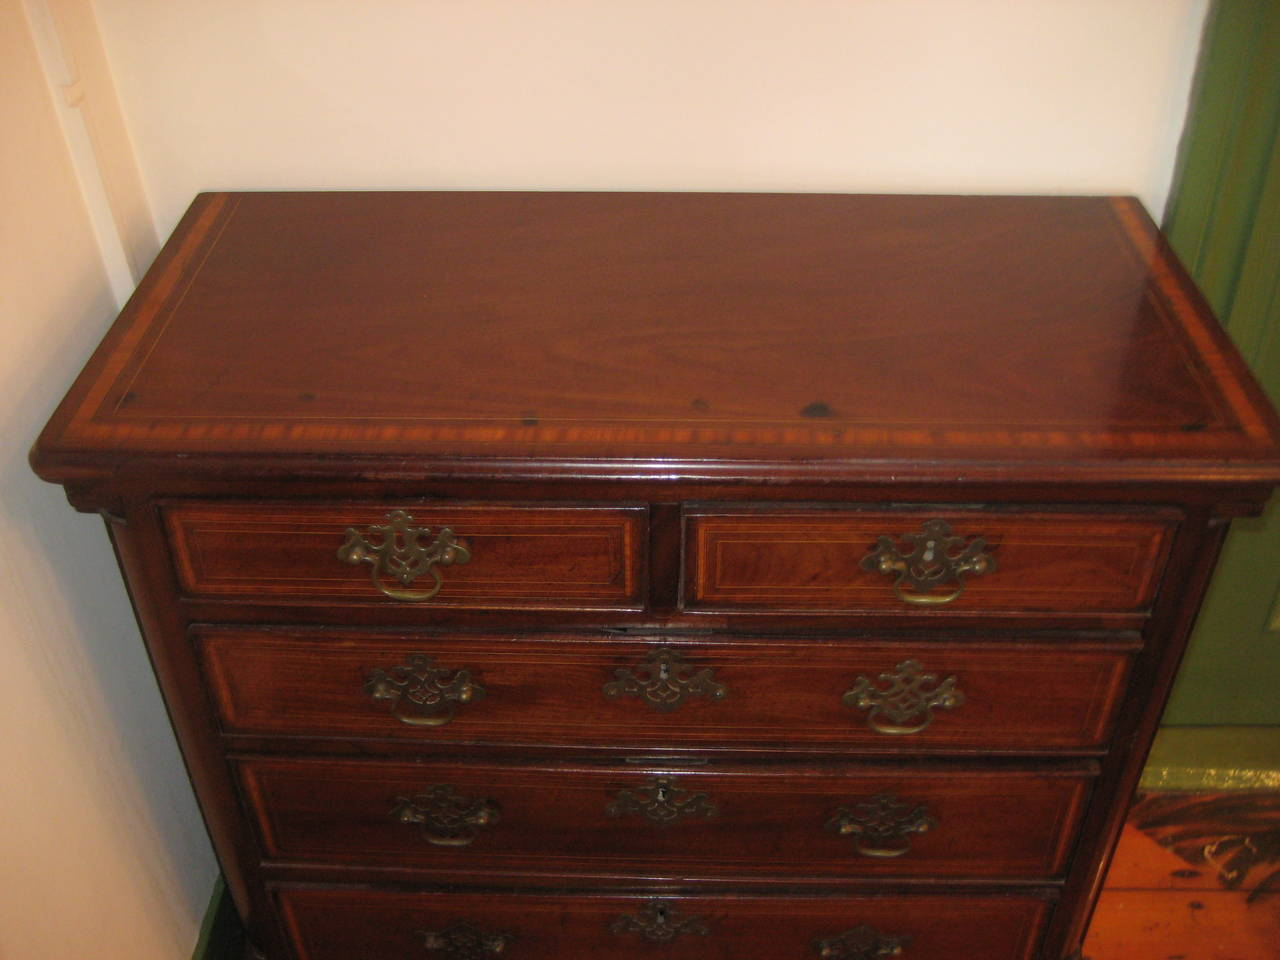 English 19th Century inlaid small chest of drawers.